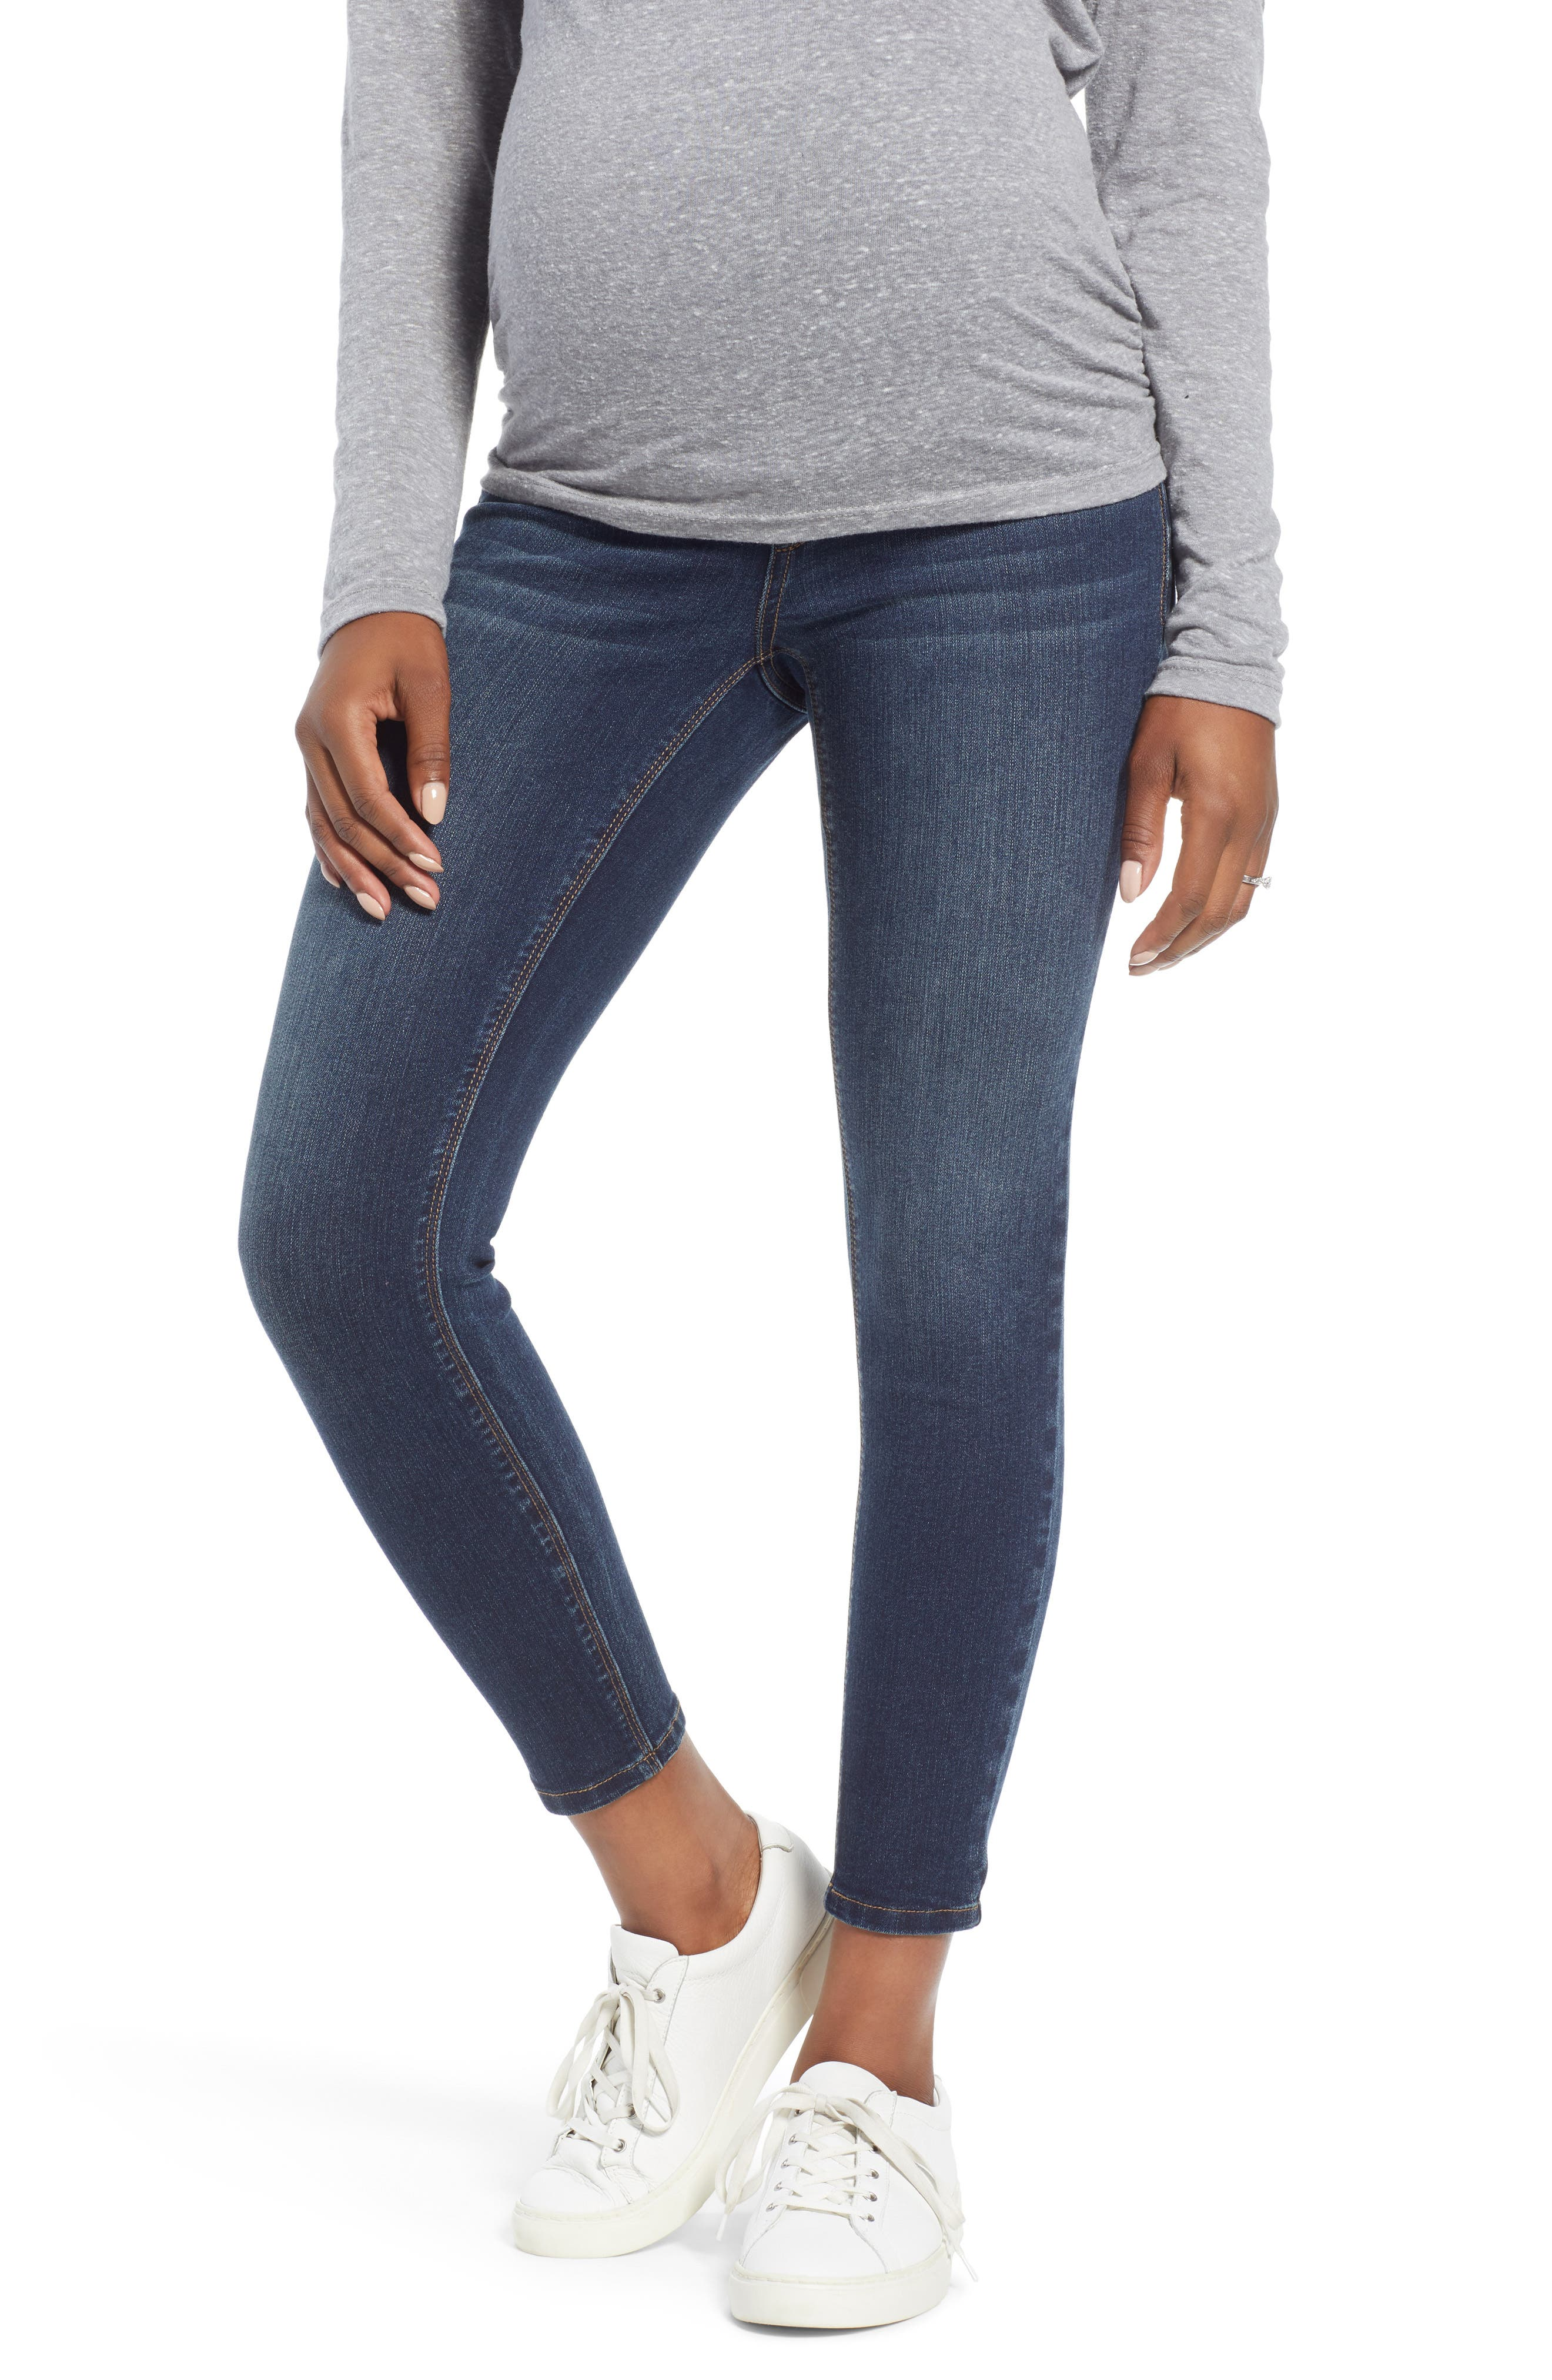 Ankle Skinny Maternity Jeans,                             Main thumbnail 1, color,                             406